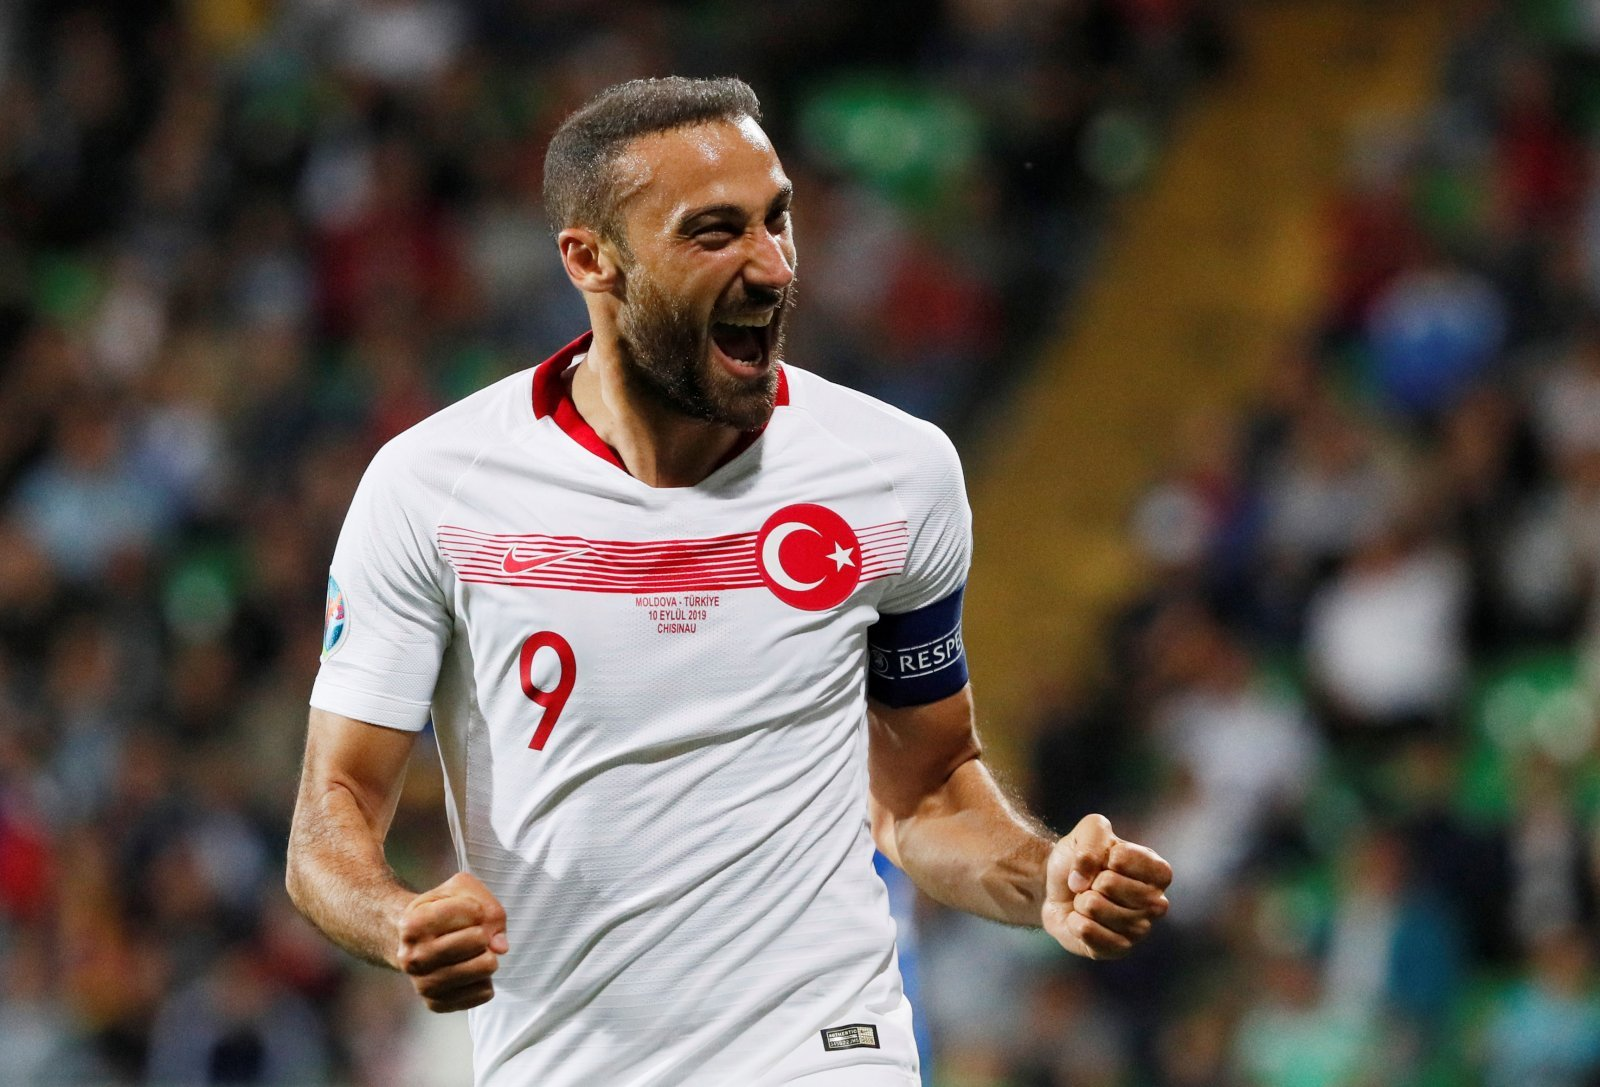 Everton: Cenk Tosun valuation lowered as Marco Silva seeks January additions